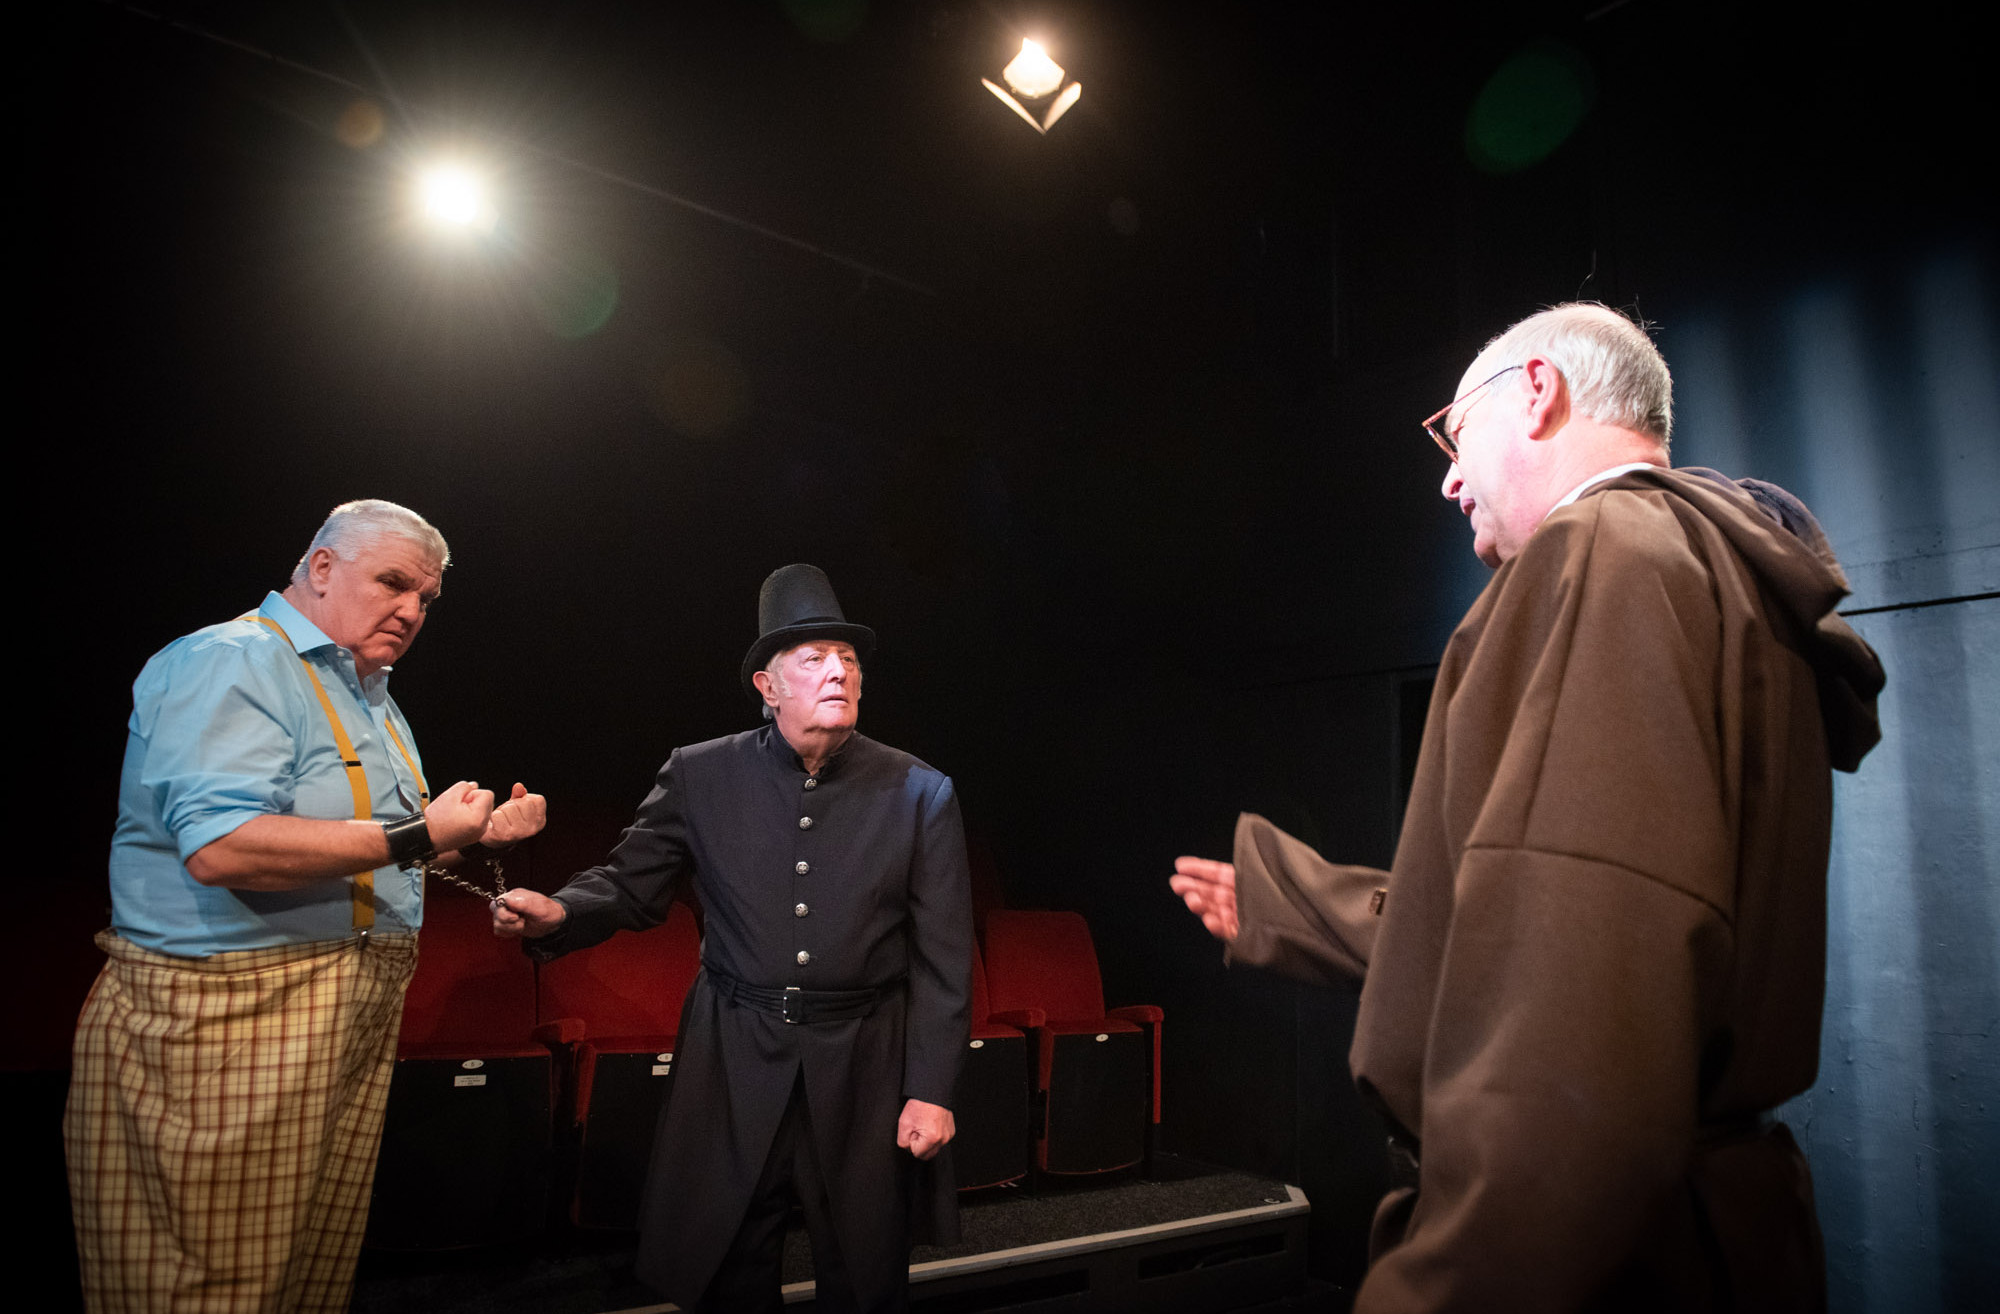 Bolton Little Theatre stage rehearsals of William Shakespeare play Measure for Measure featuring David Smart as Pompey, Mike Jeffries as Elbow and Peter Scofield as the Duke (in priest disguise)